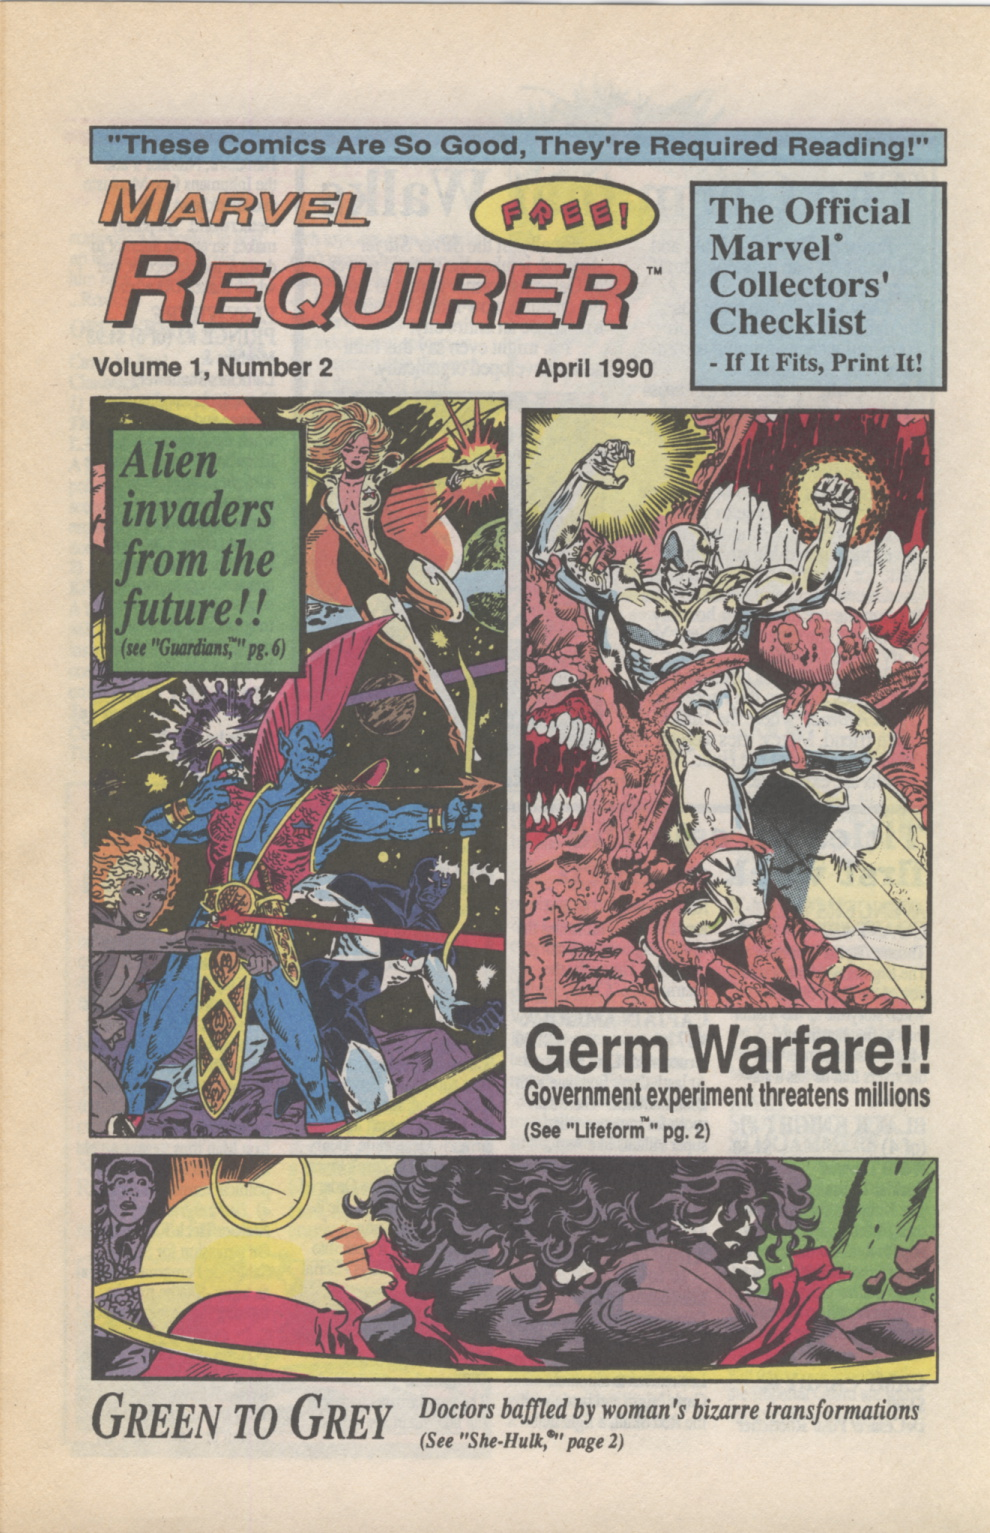 Time Capsule: Marvel Requirer 2, April 1990